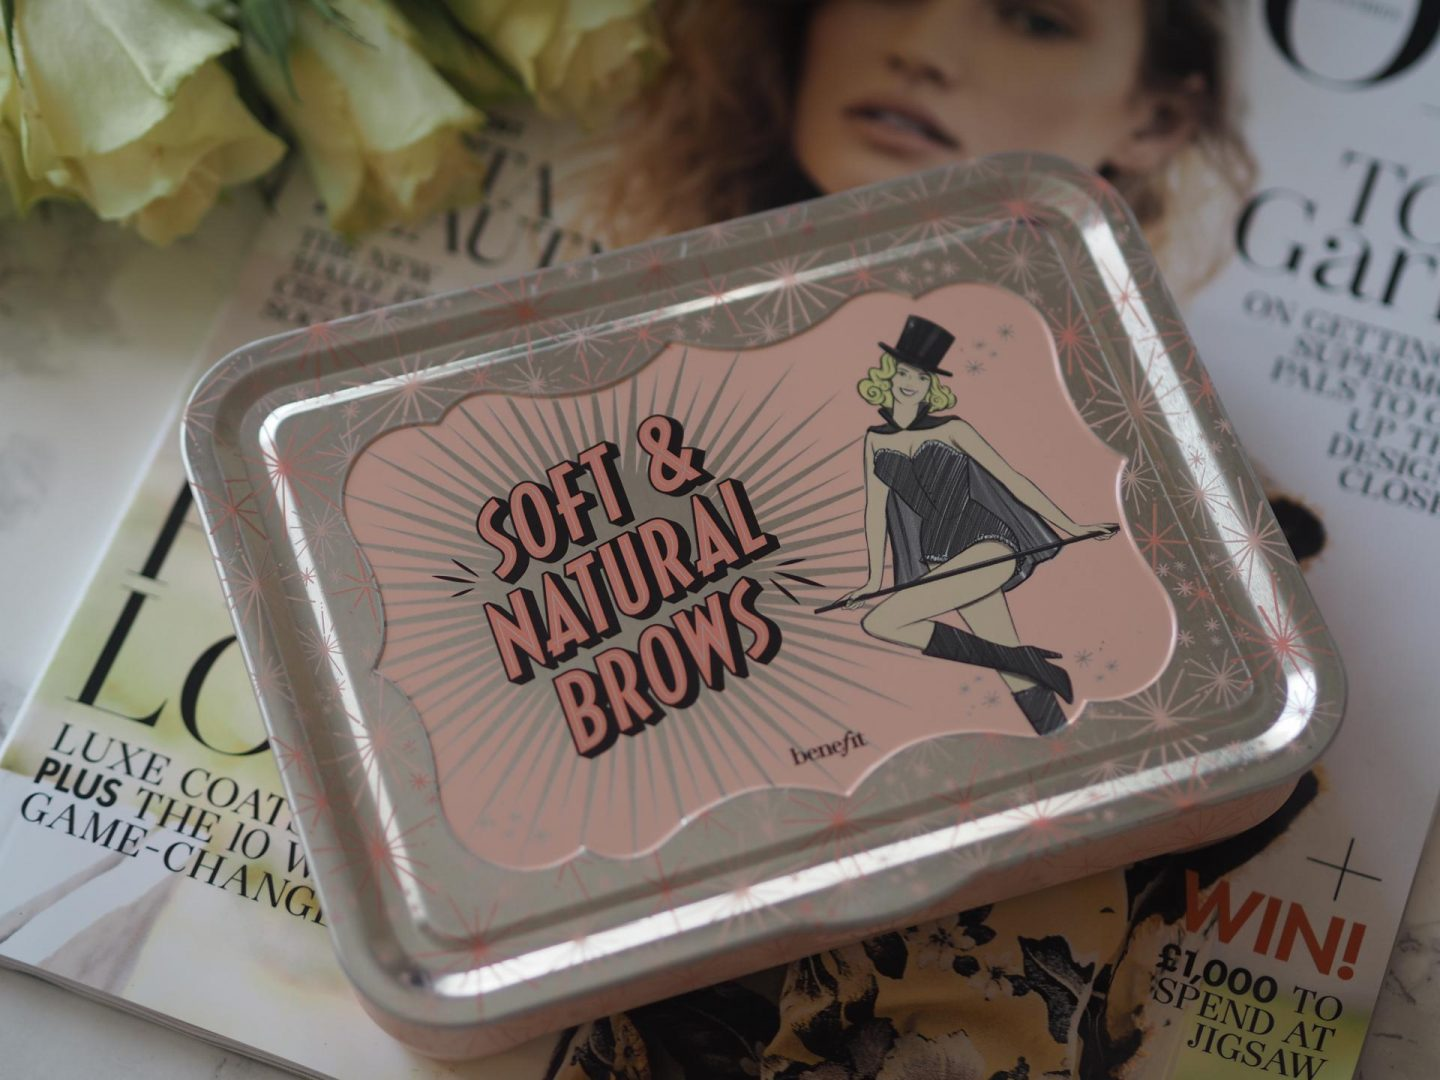 Winter Skincare - Product: Benefit Brows – Soft and Natural Brows Kit